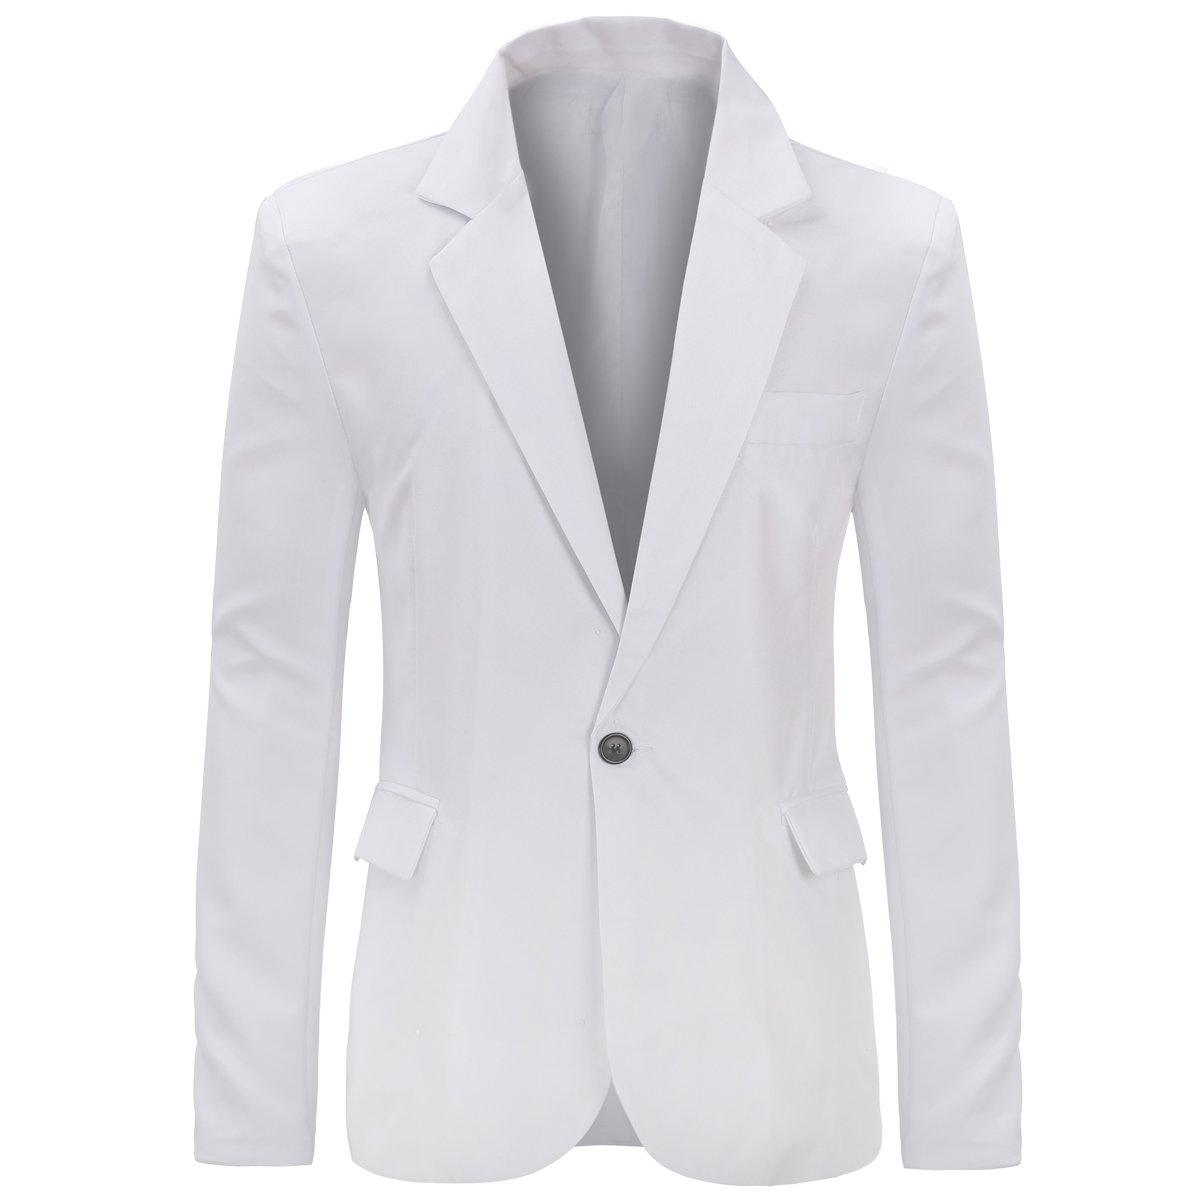 YUNCLOS Men's Slim Fit Casual One Button Notched Lapel Blazer Jacket